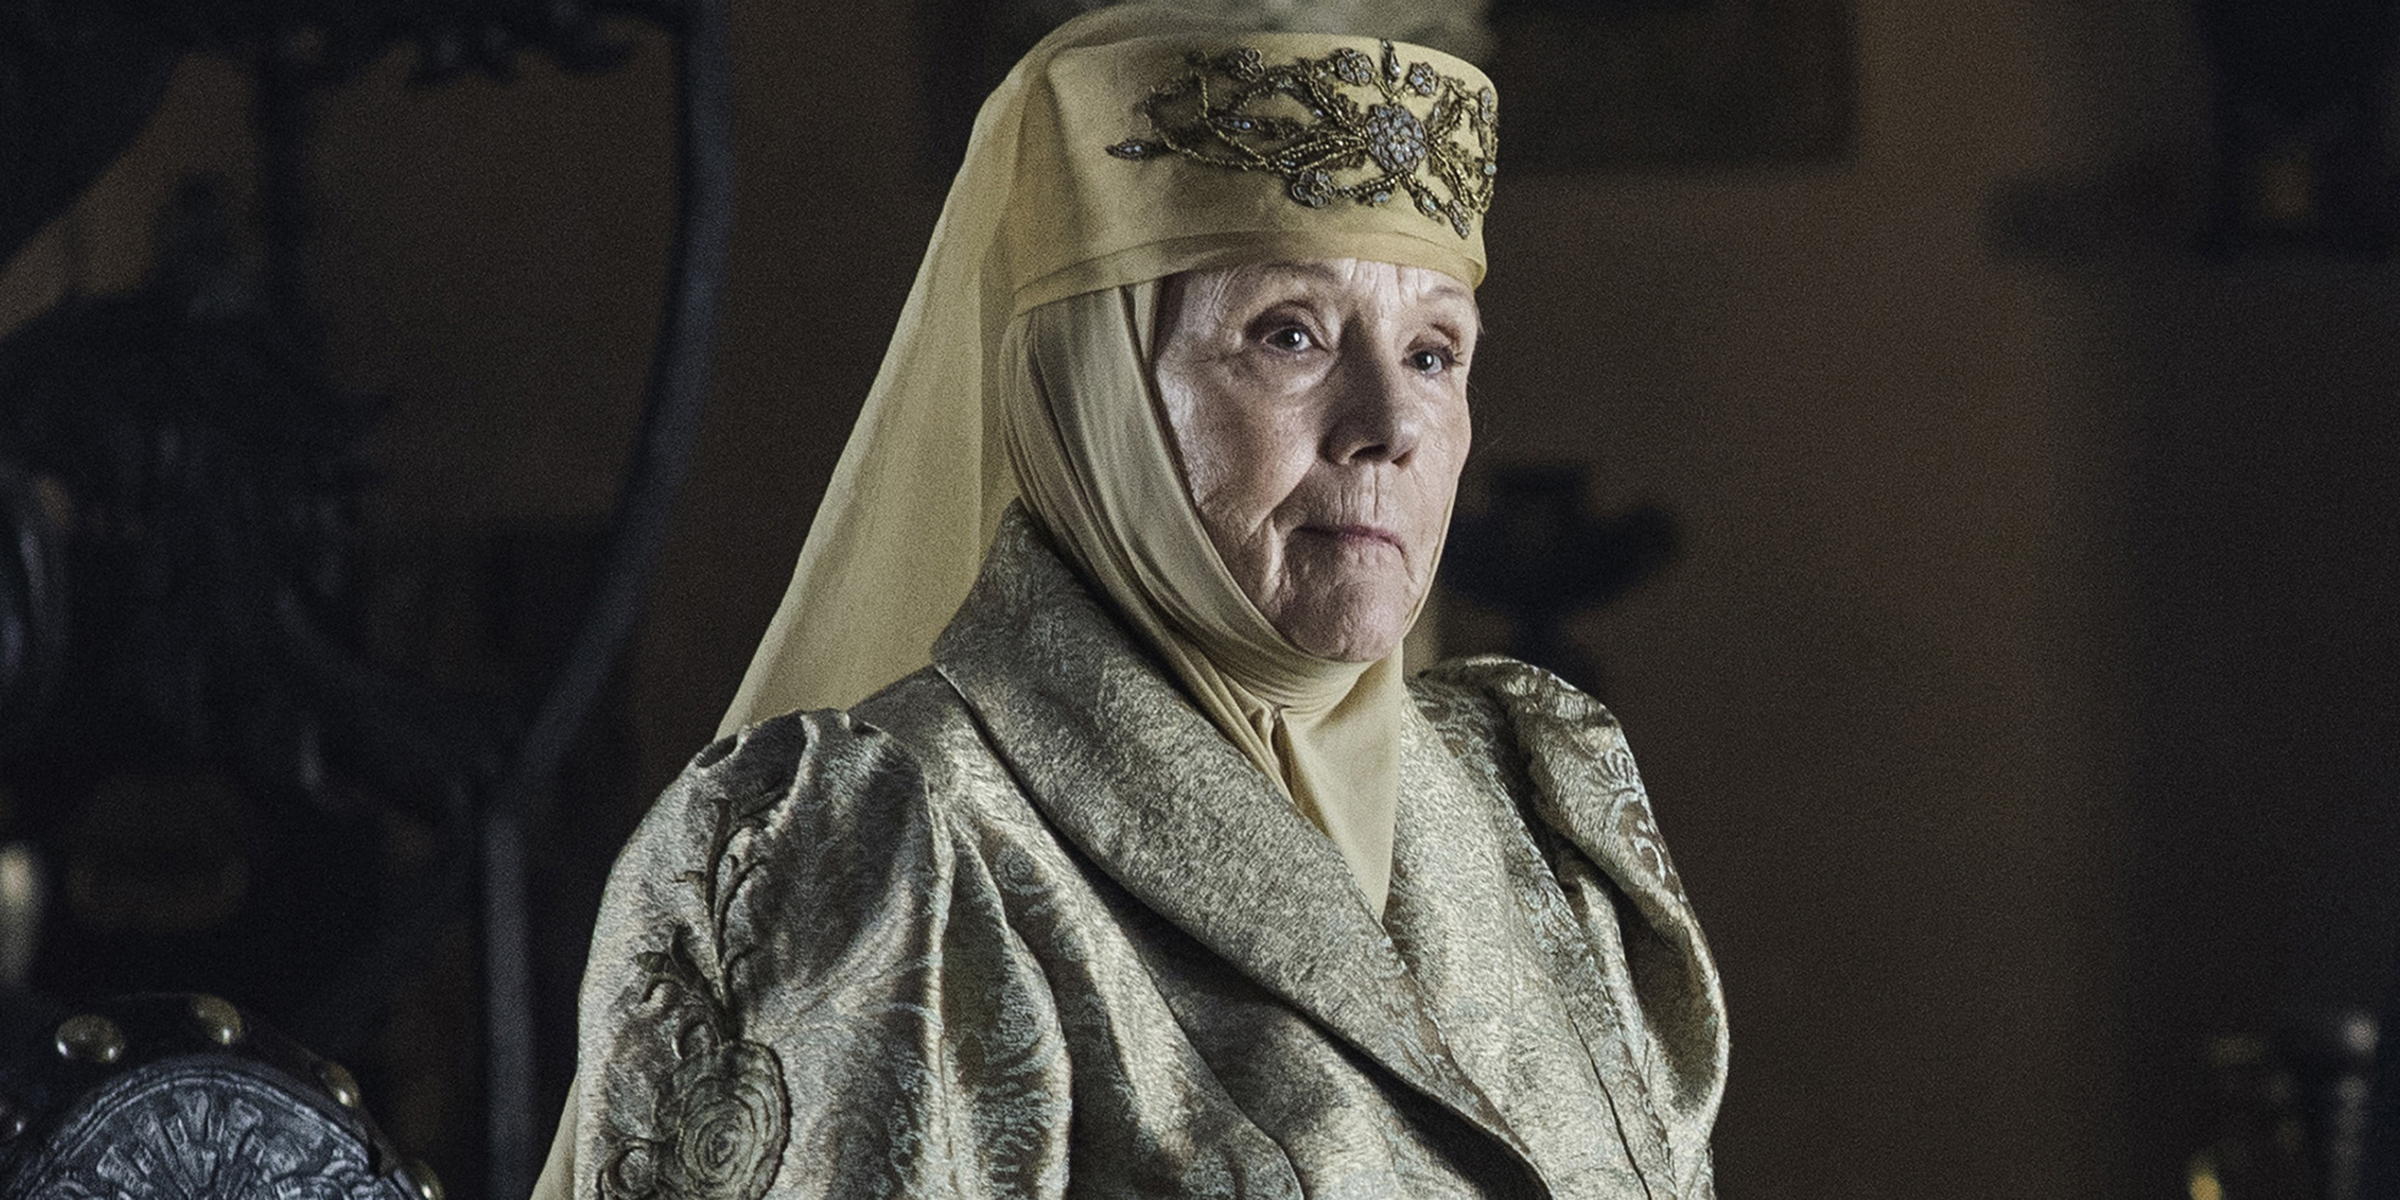 diana rigg star of games of thrones and the avengers dies at 82 diana rigg star of games of thrones